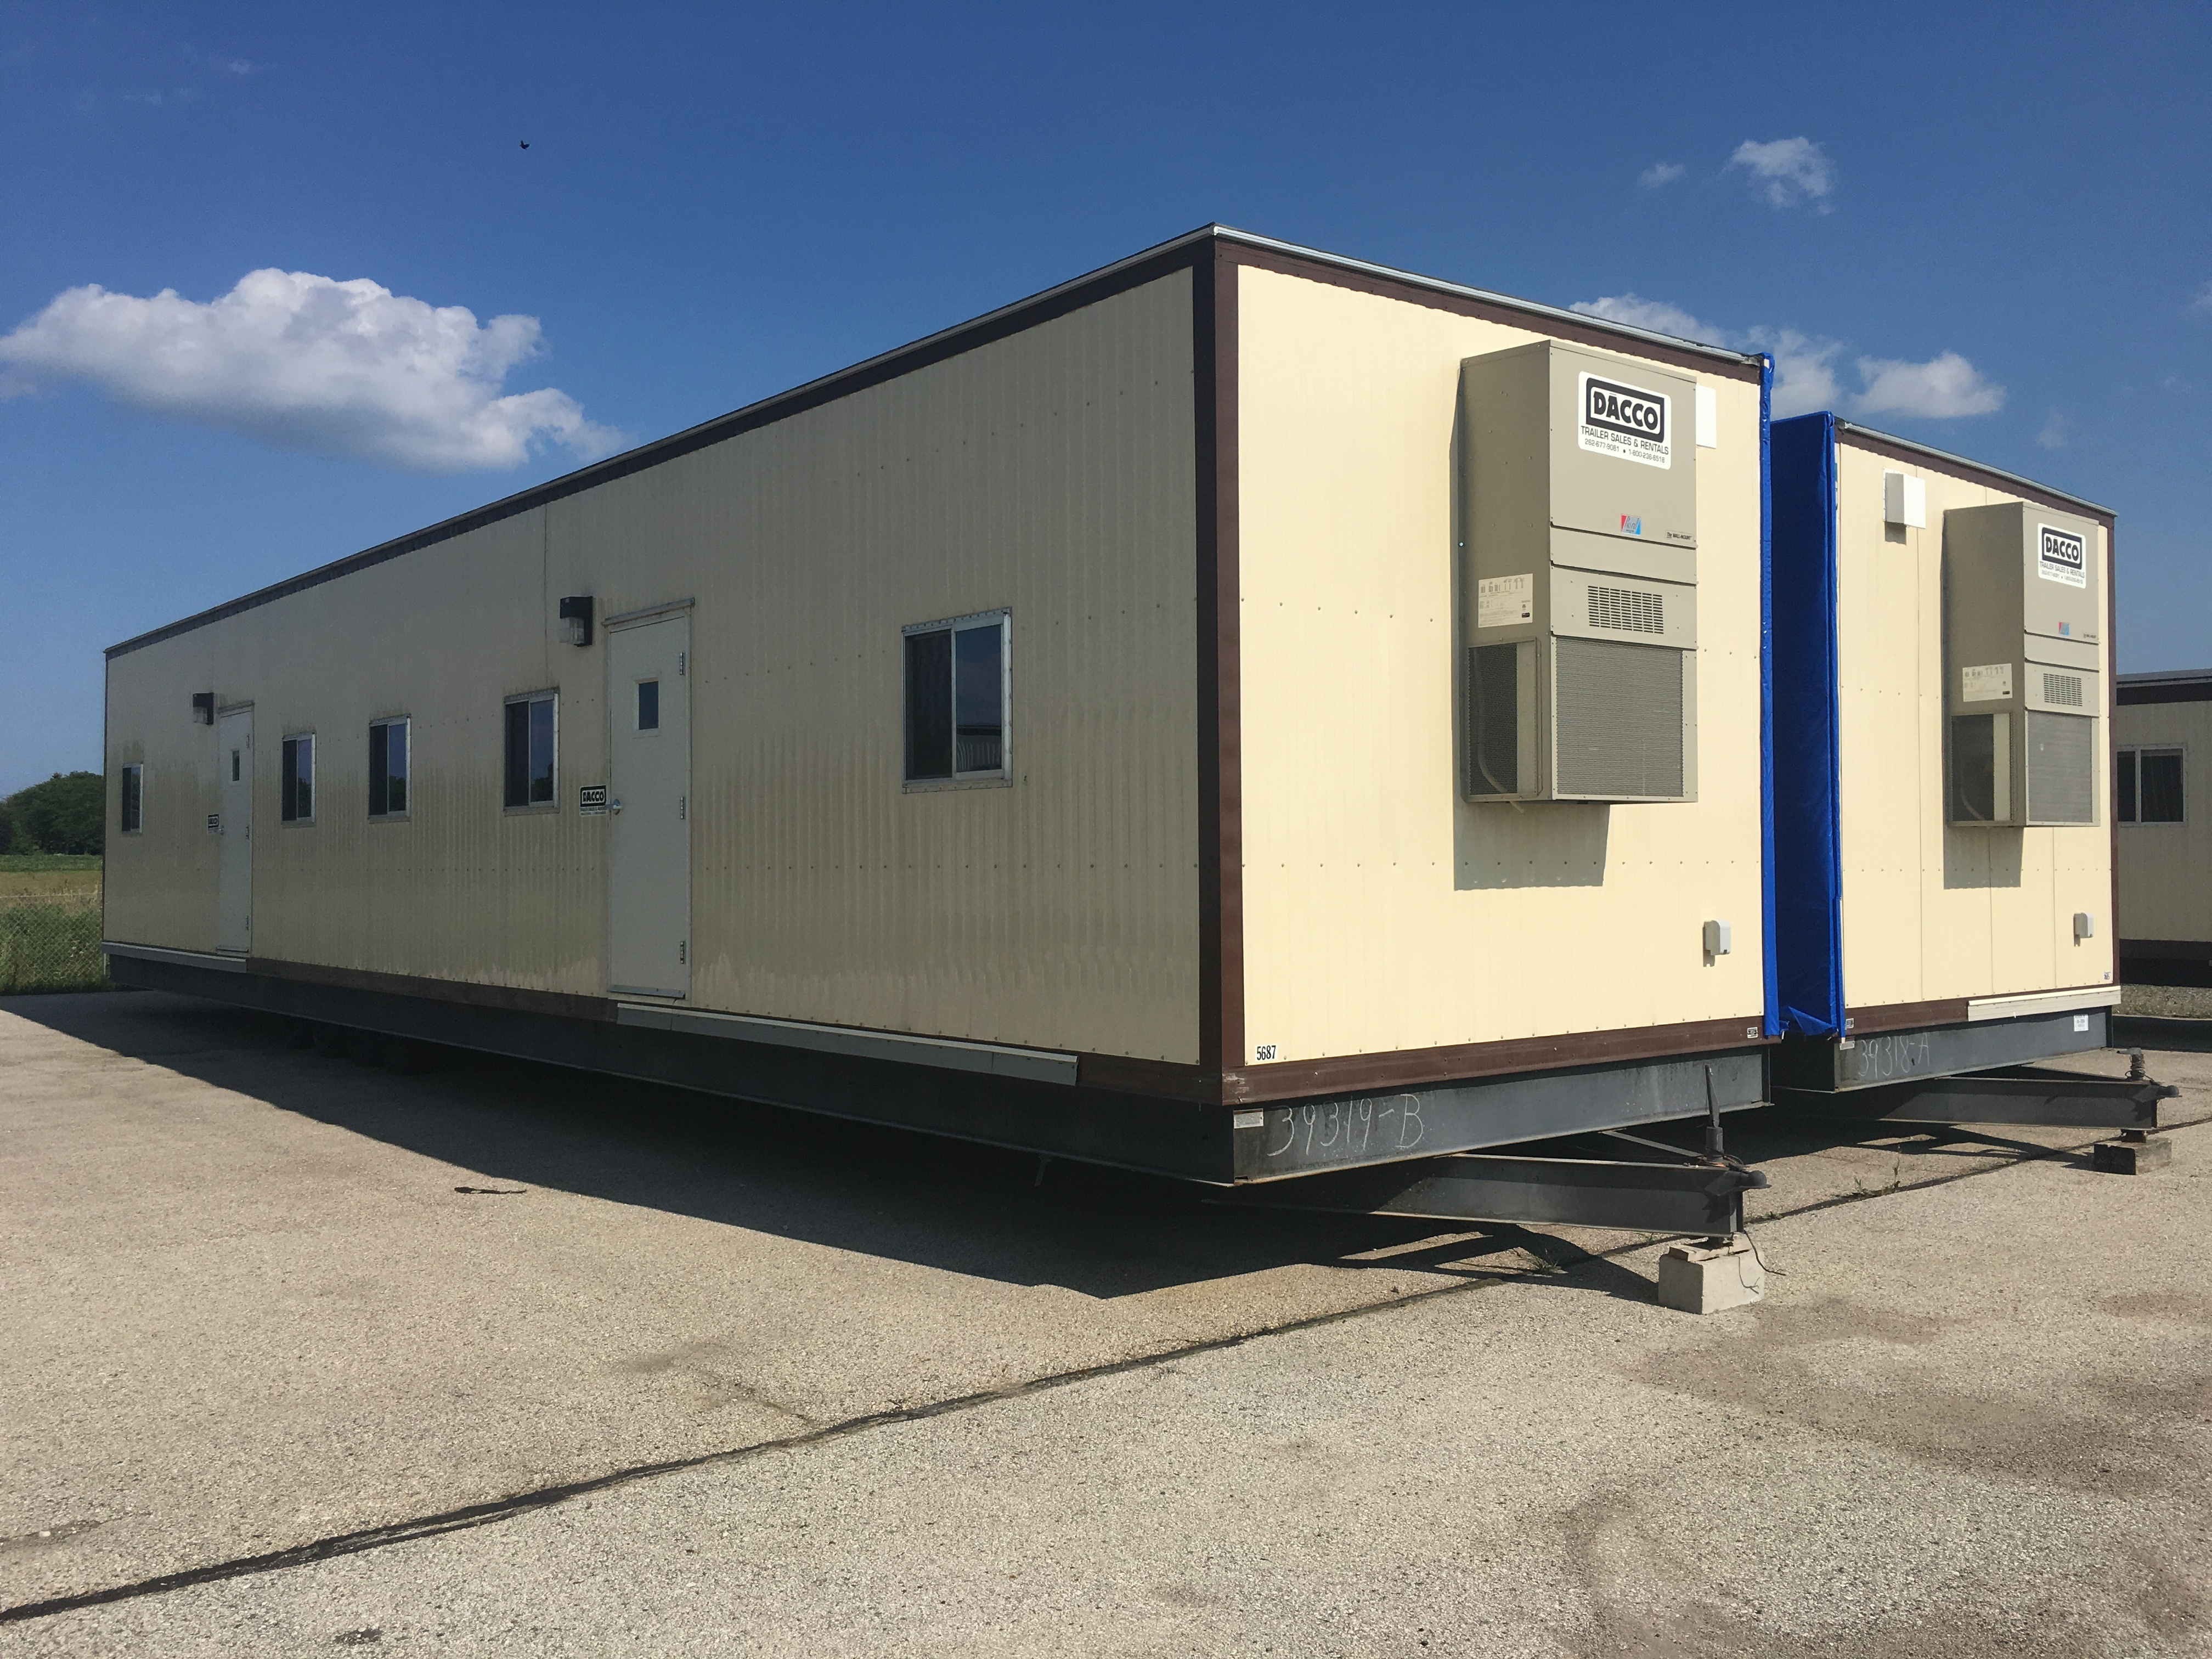 24 X 60 Mobile Office Dacco Trailers